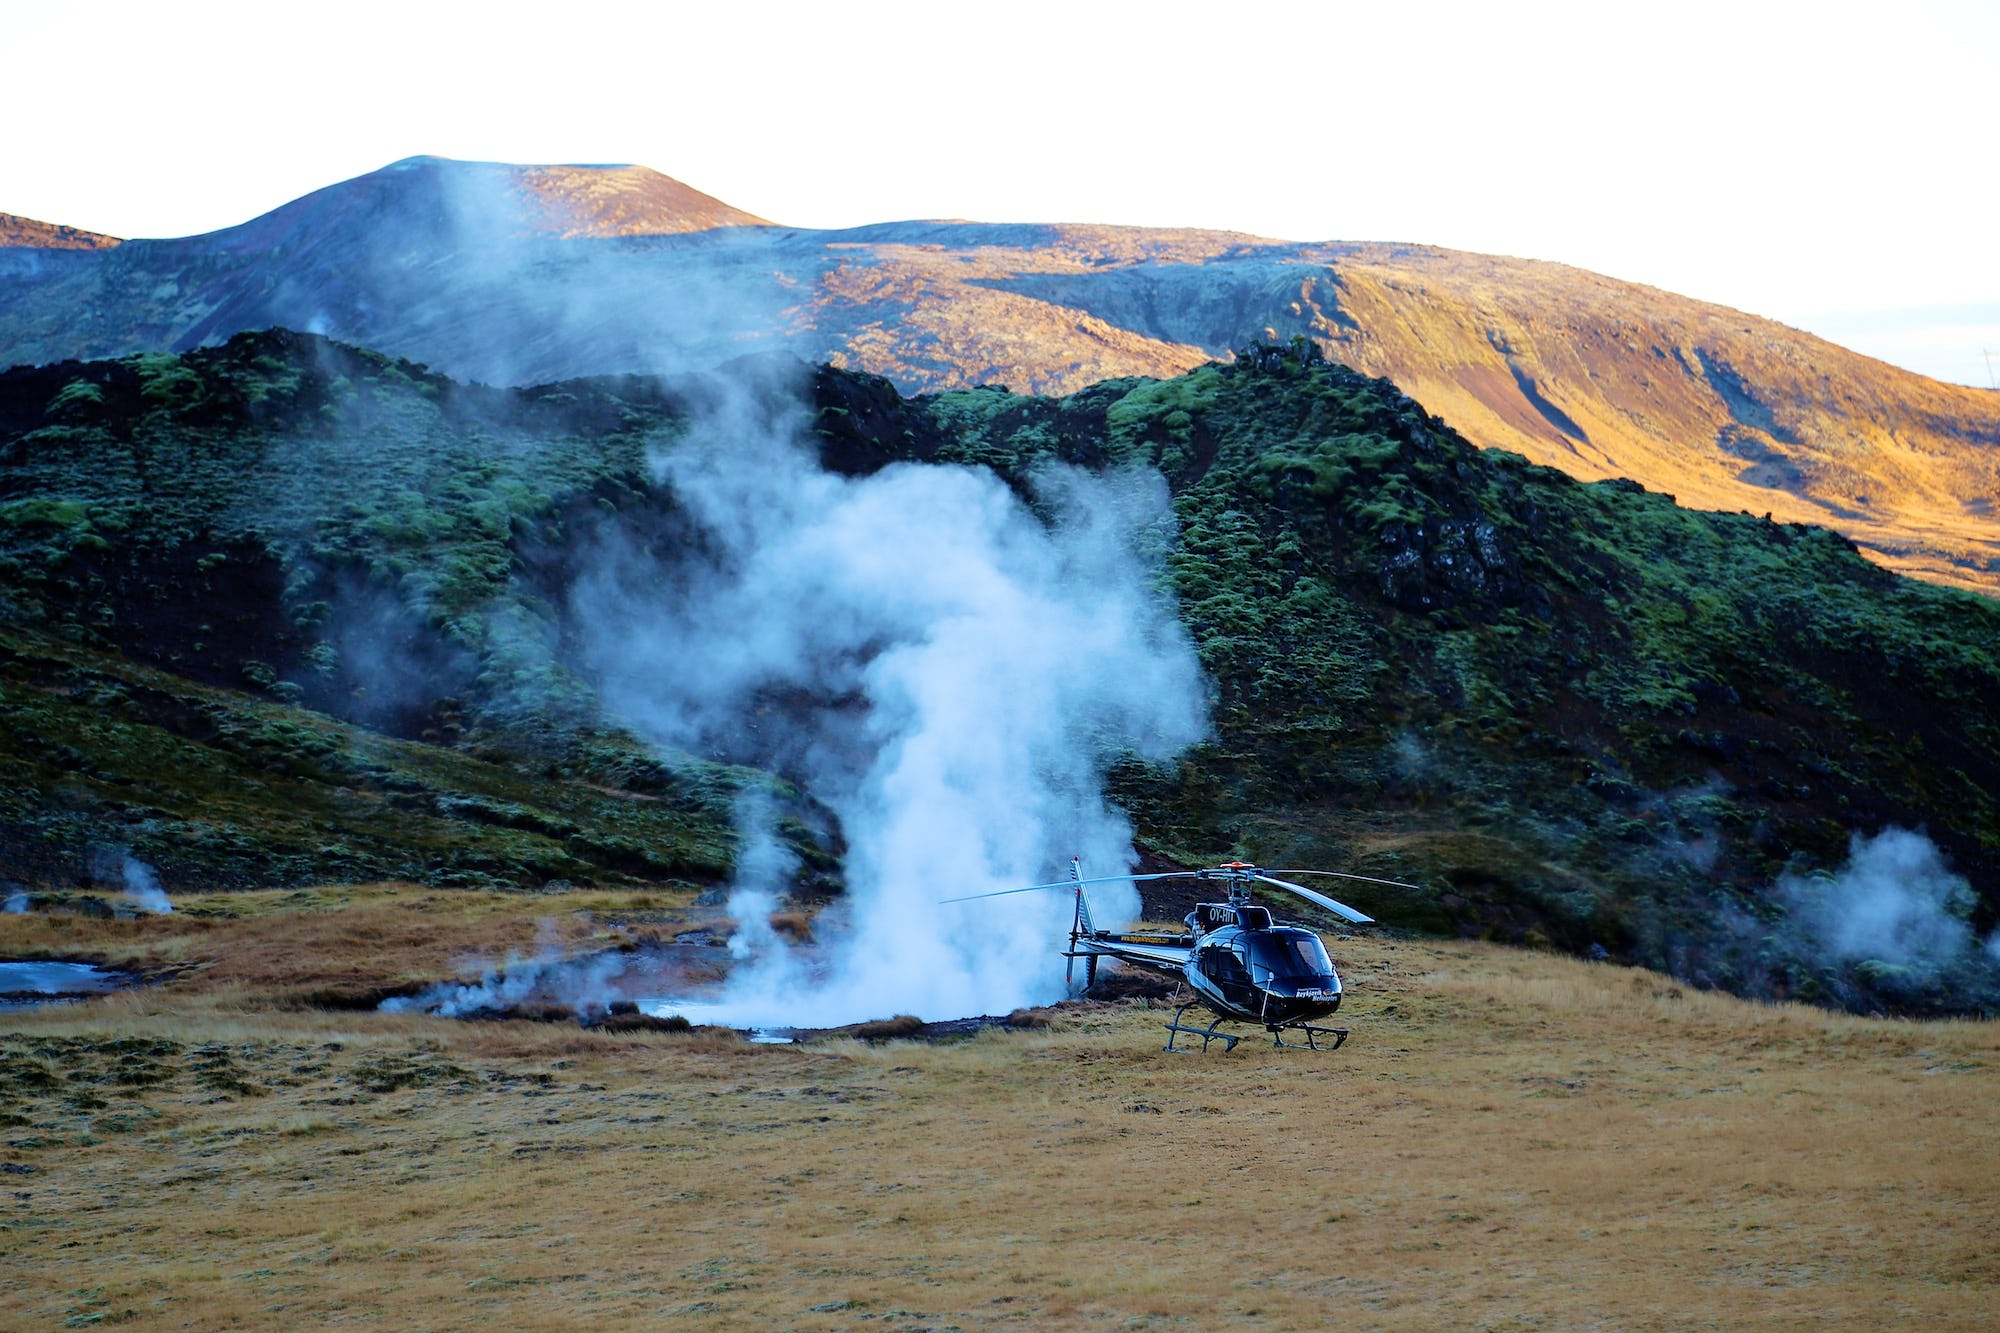 Helicopter touchdown on Hengill Volcano in southwest Iceland.